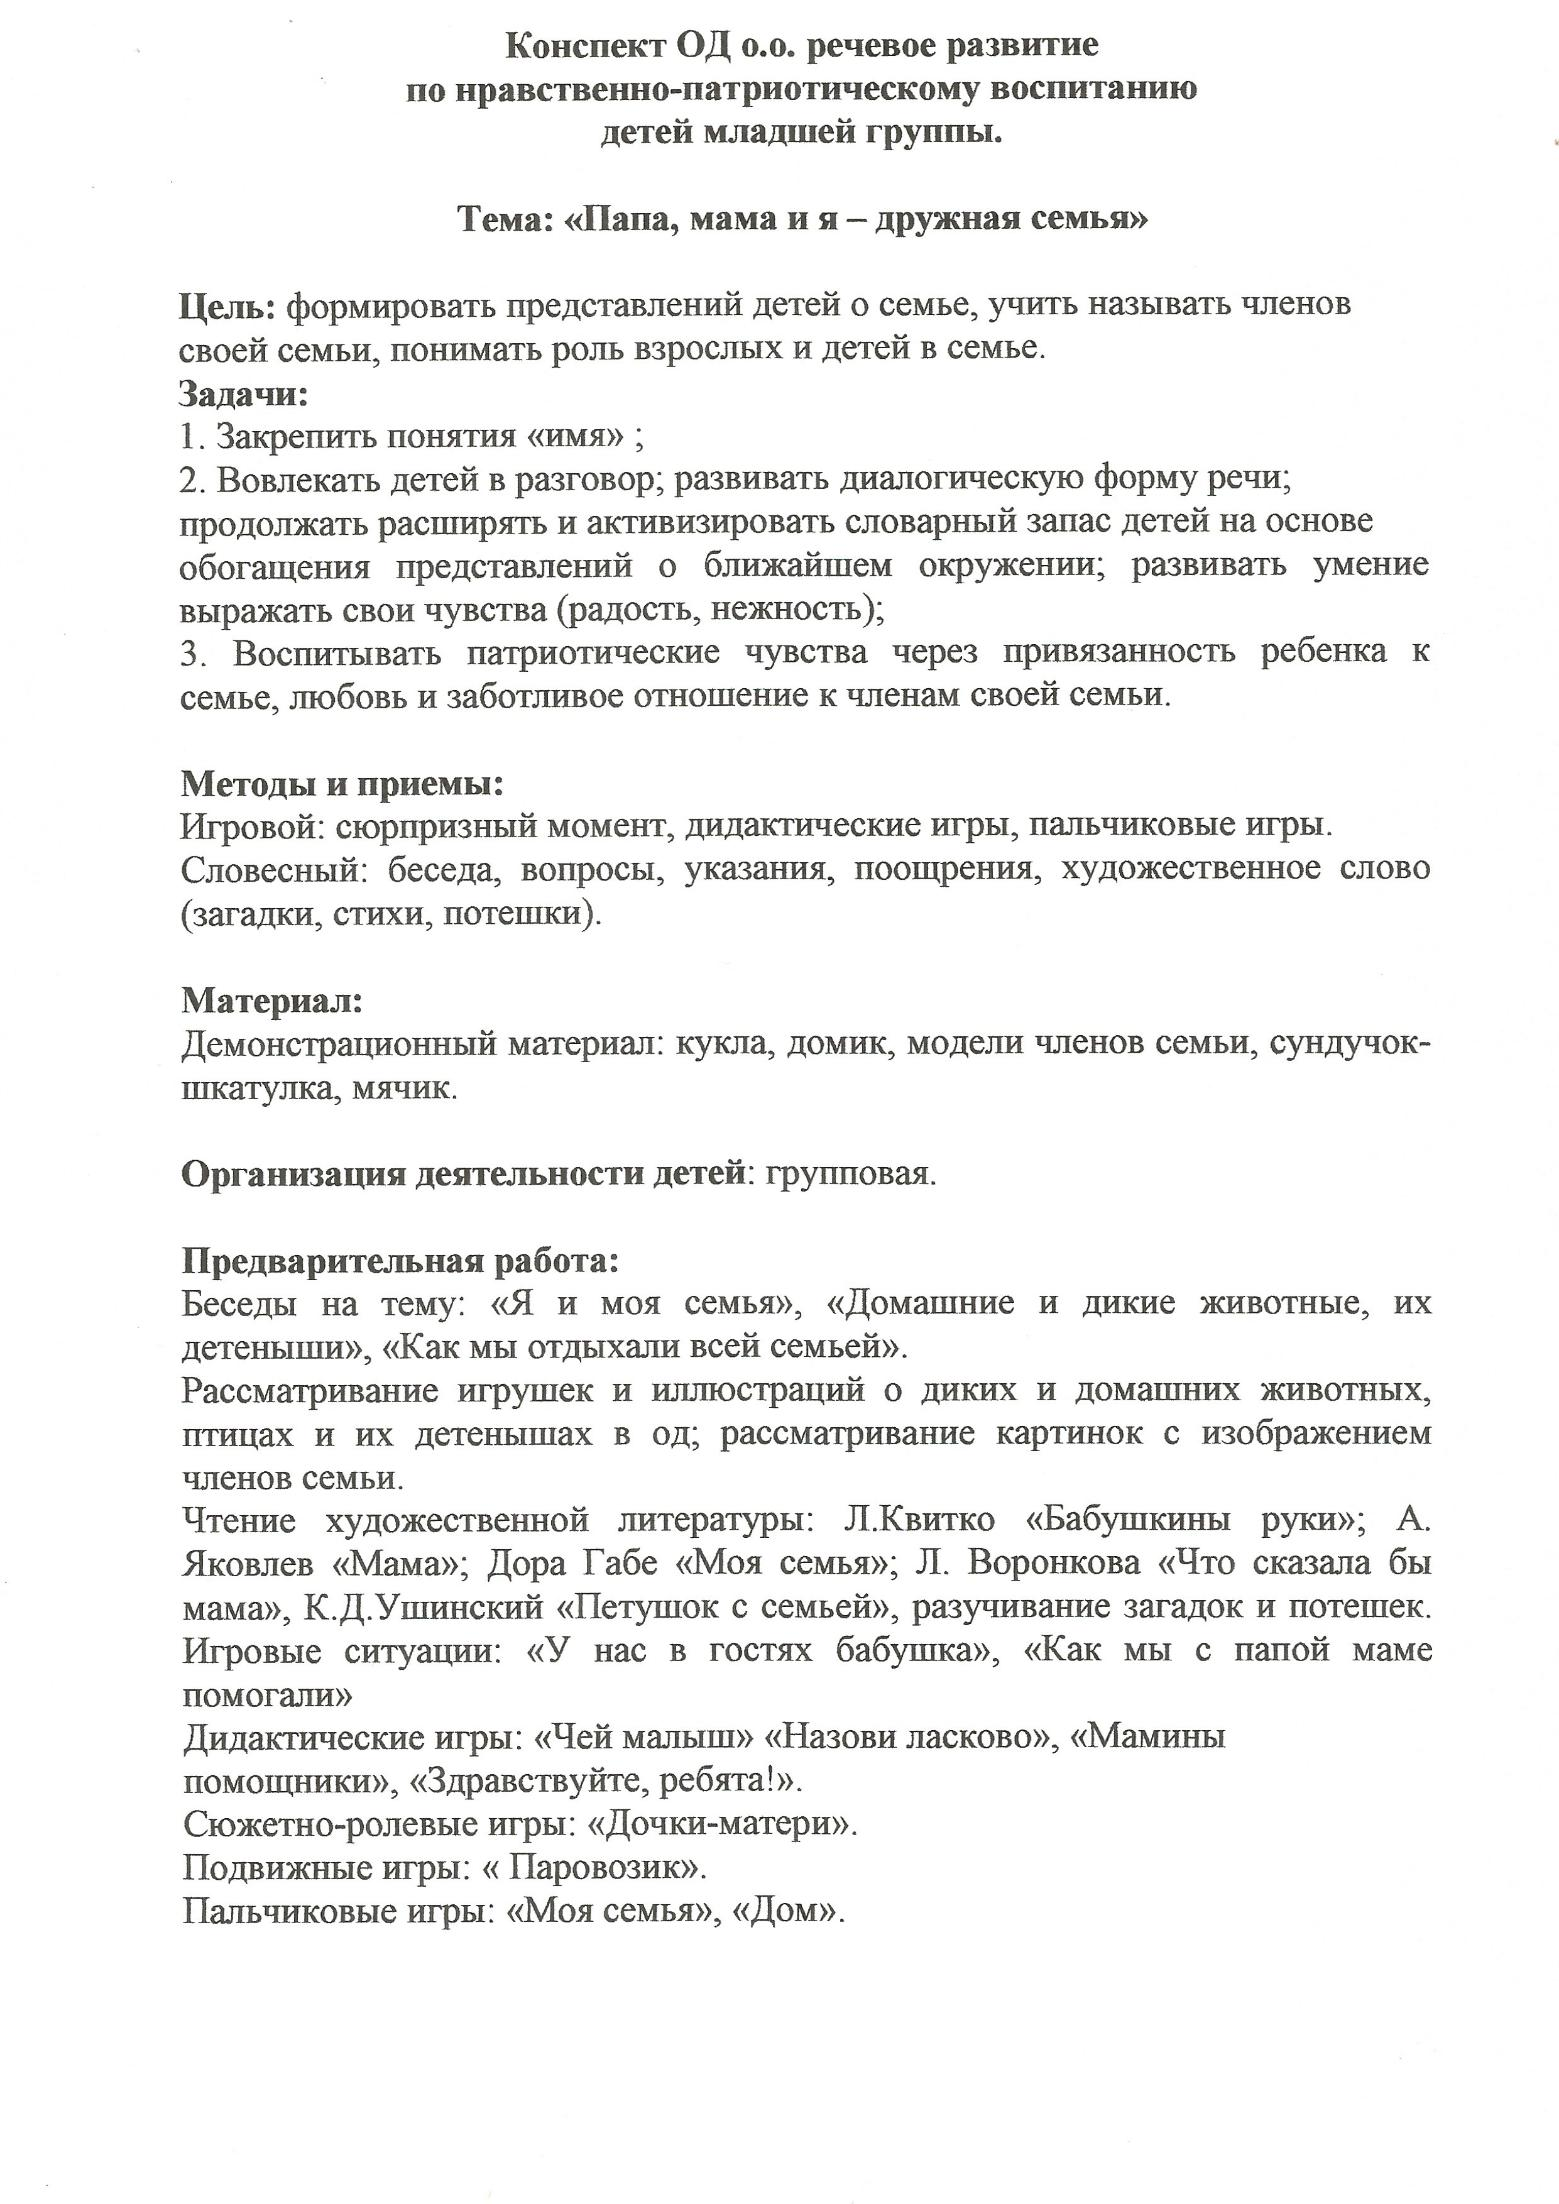 C:\Users\мардановы\Documents\Scan.tif